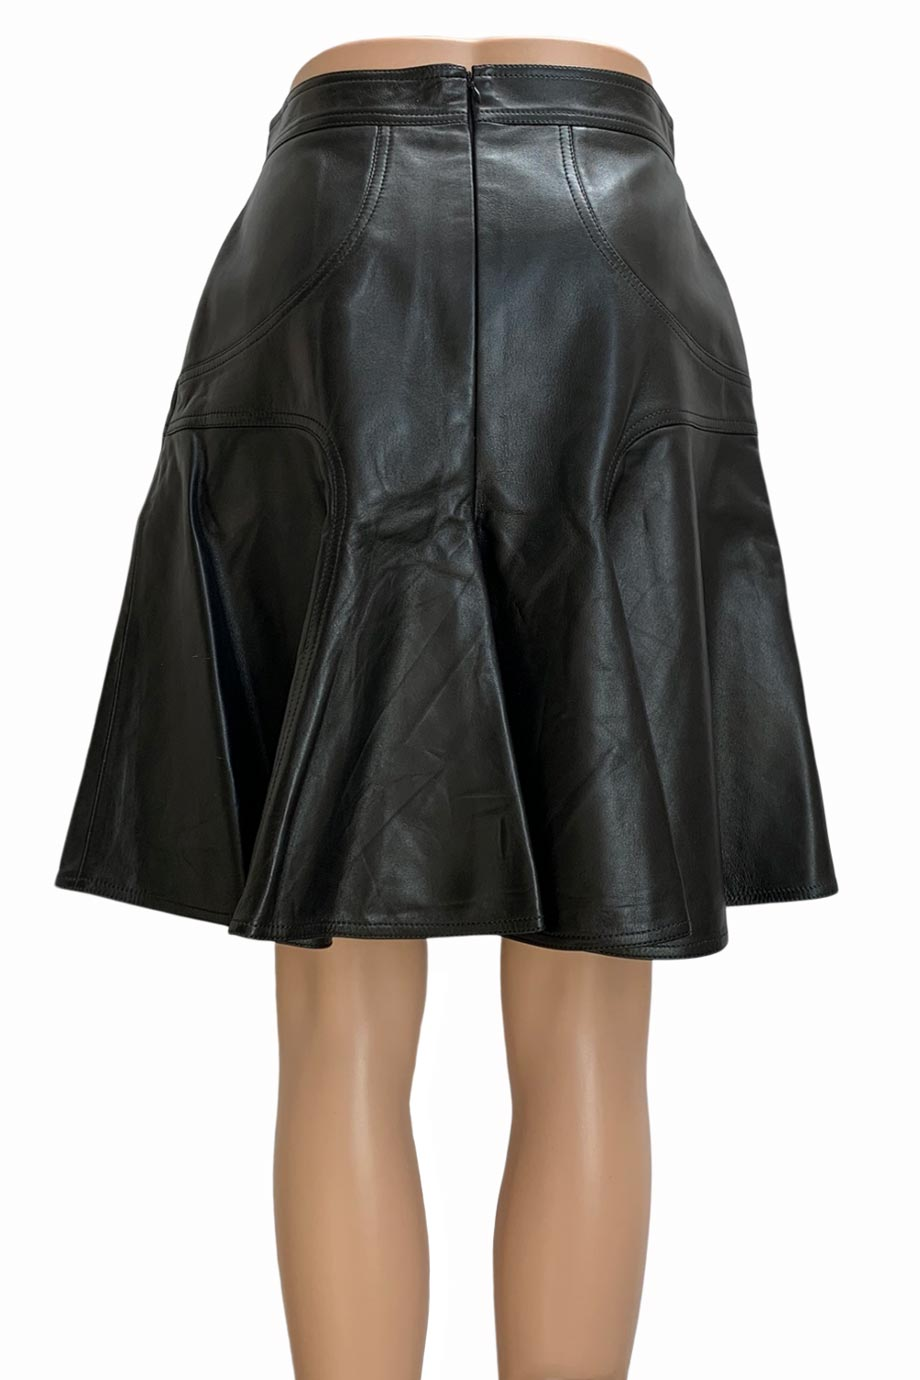 Andrew Gn Solid Black Leather A-Line Flared Skirt / Sz 42